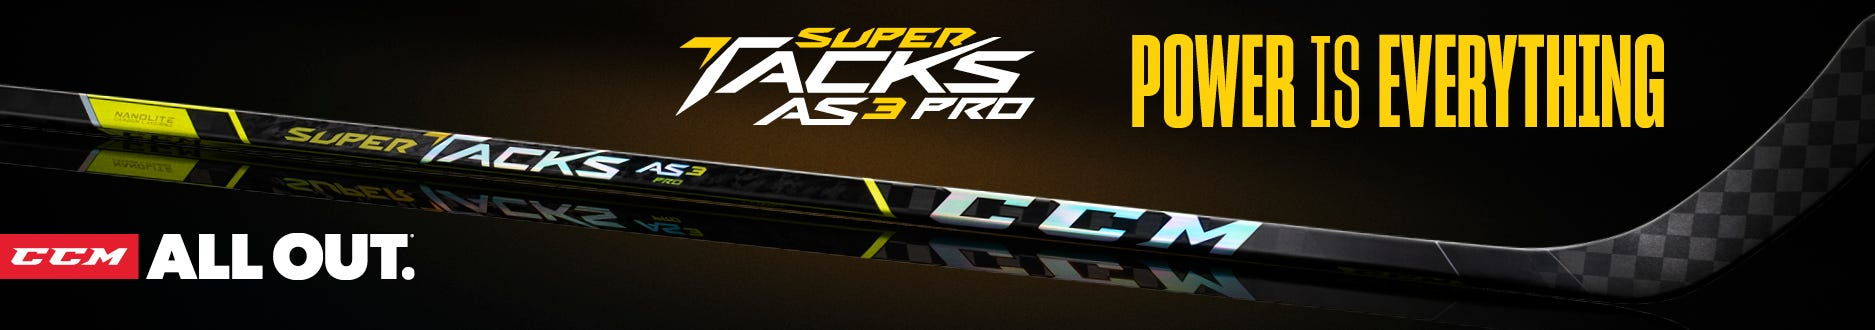 CCM Super Tacks AS3 Pro Sticks: Power Is Everything